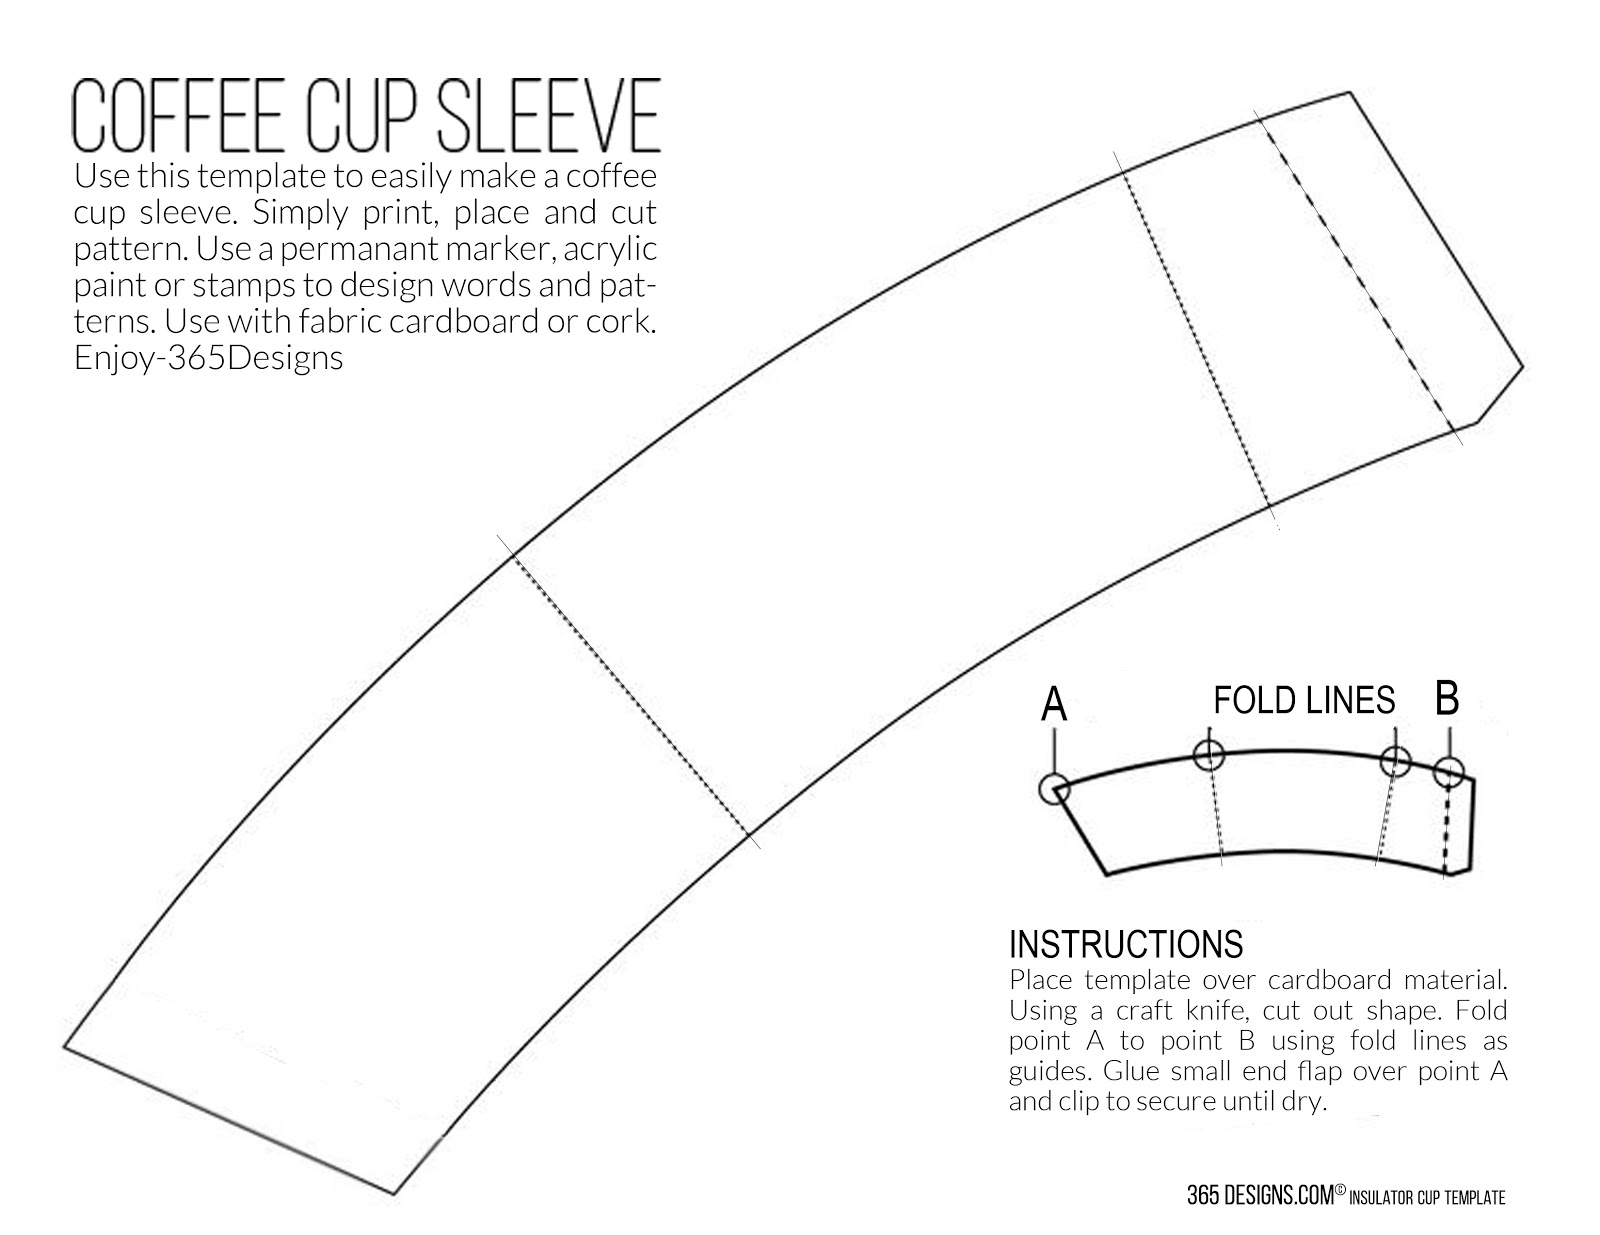 +Sleeve+Template ... : new McCafé single brew coffee with printable ...